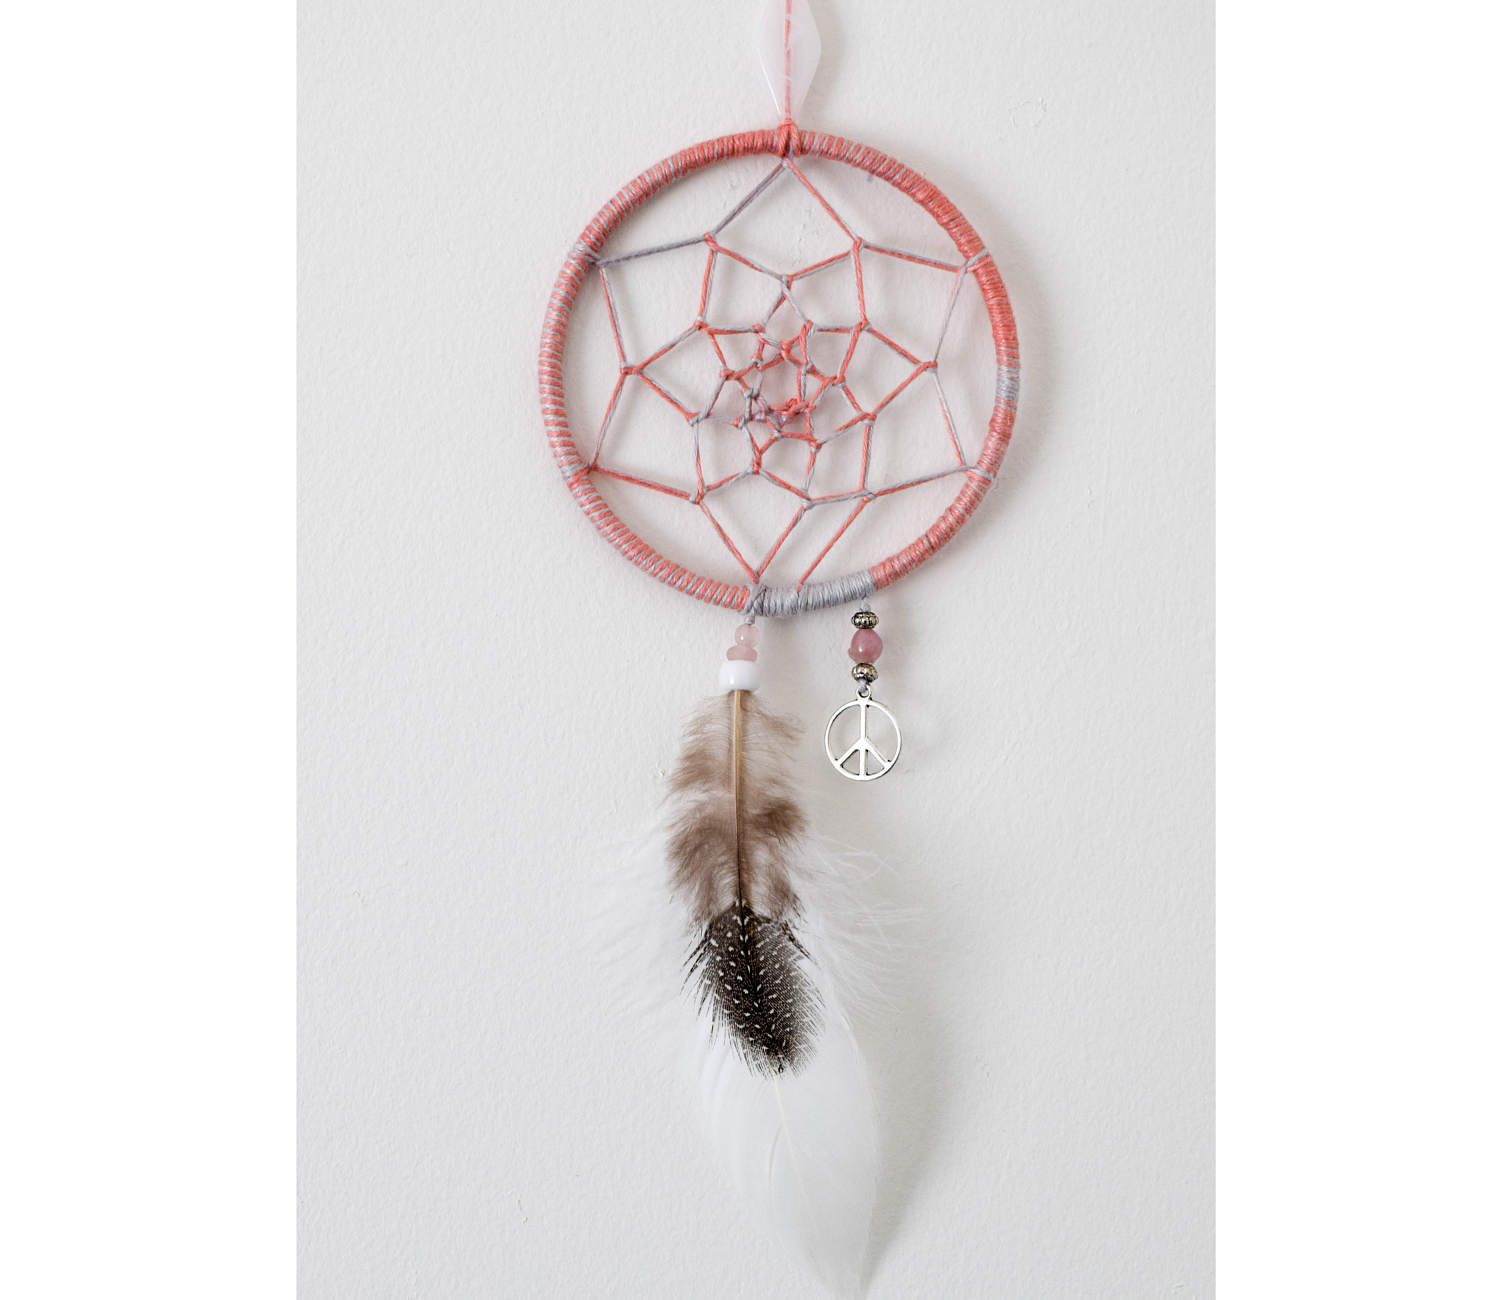 Peace Sign Decor For Bedroom Small Boho Dreamcatcher Peach Grey Dream Catcher Bedroom Decor